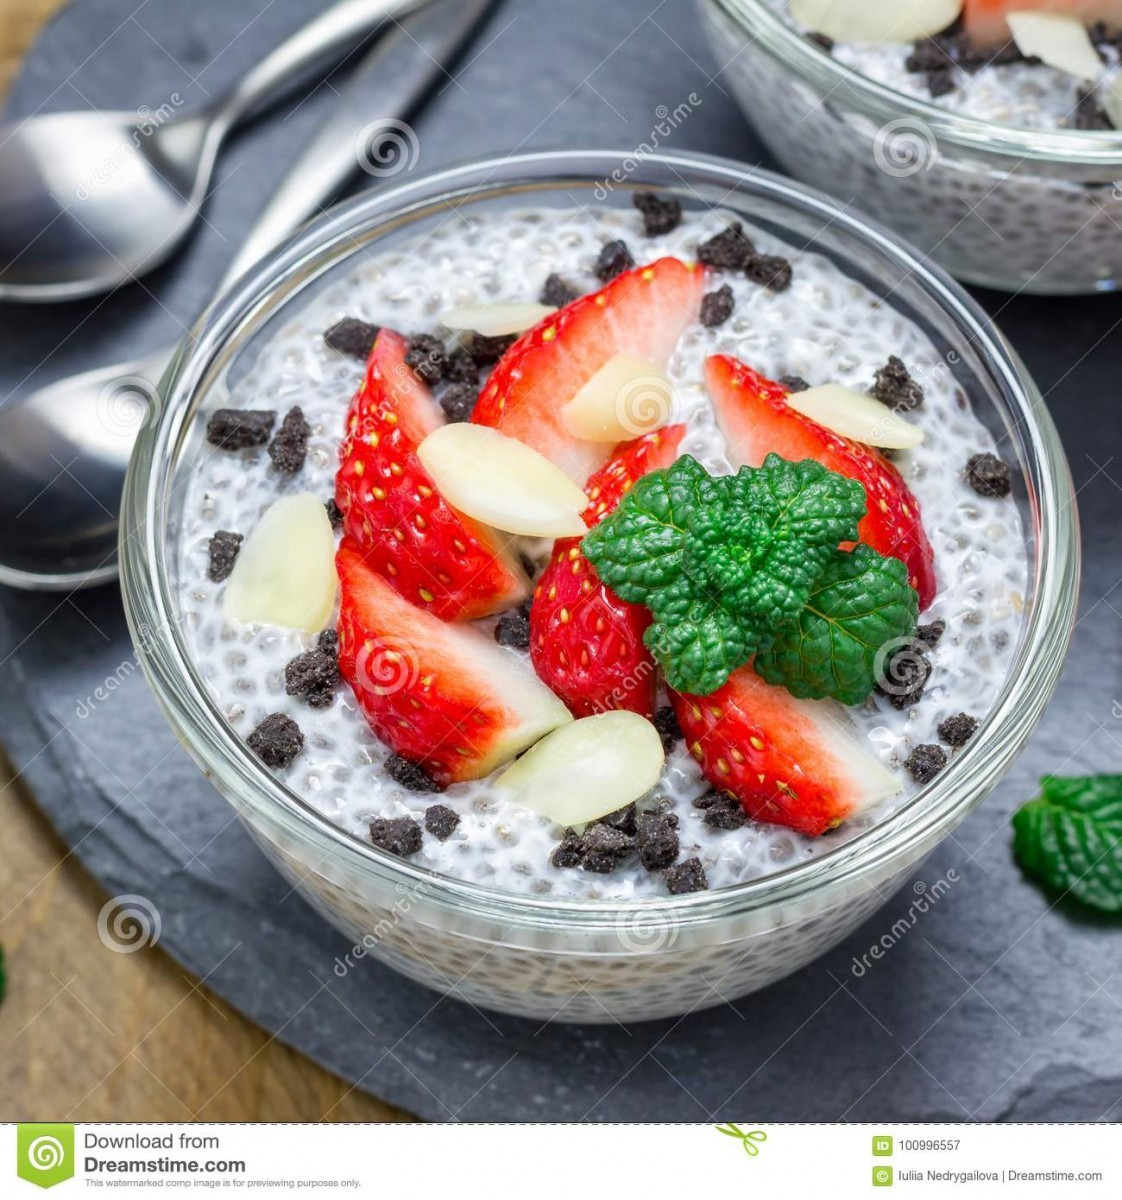 Chia Seed Pudding With Strawberries, Almond And Chocolate Cookie